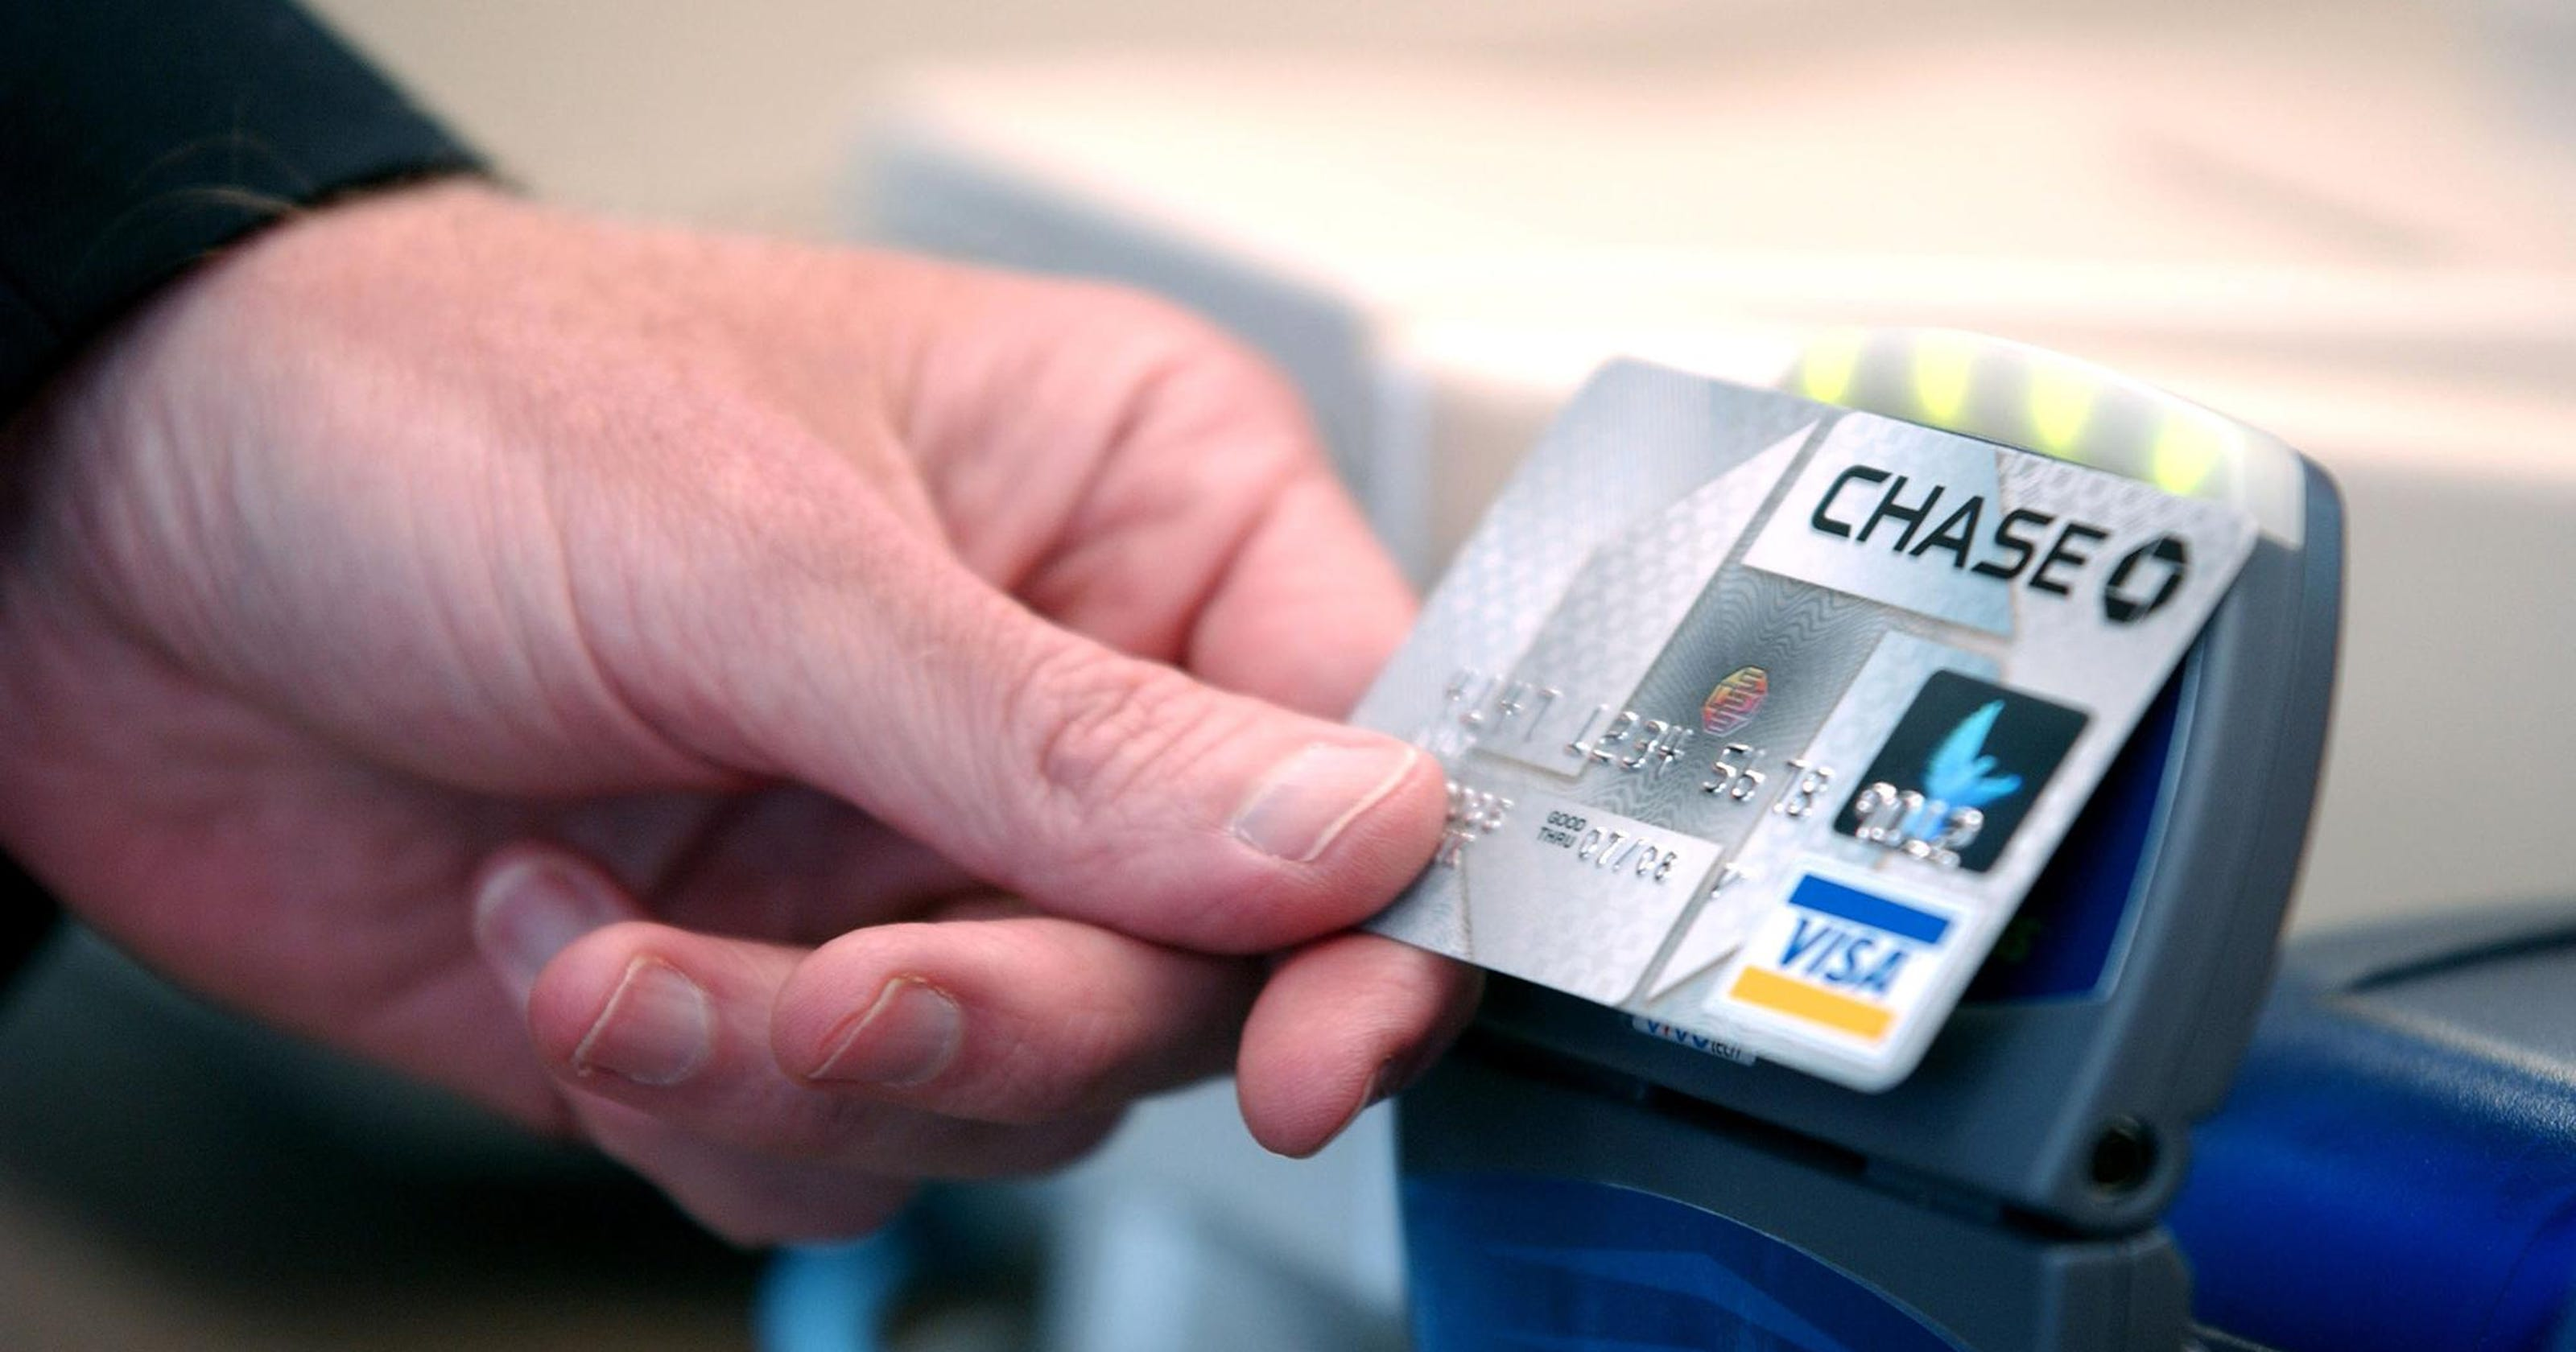 Chase backs off on overdraft protection